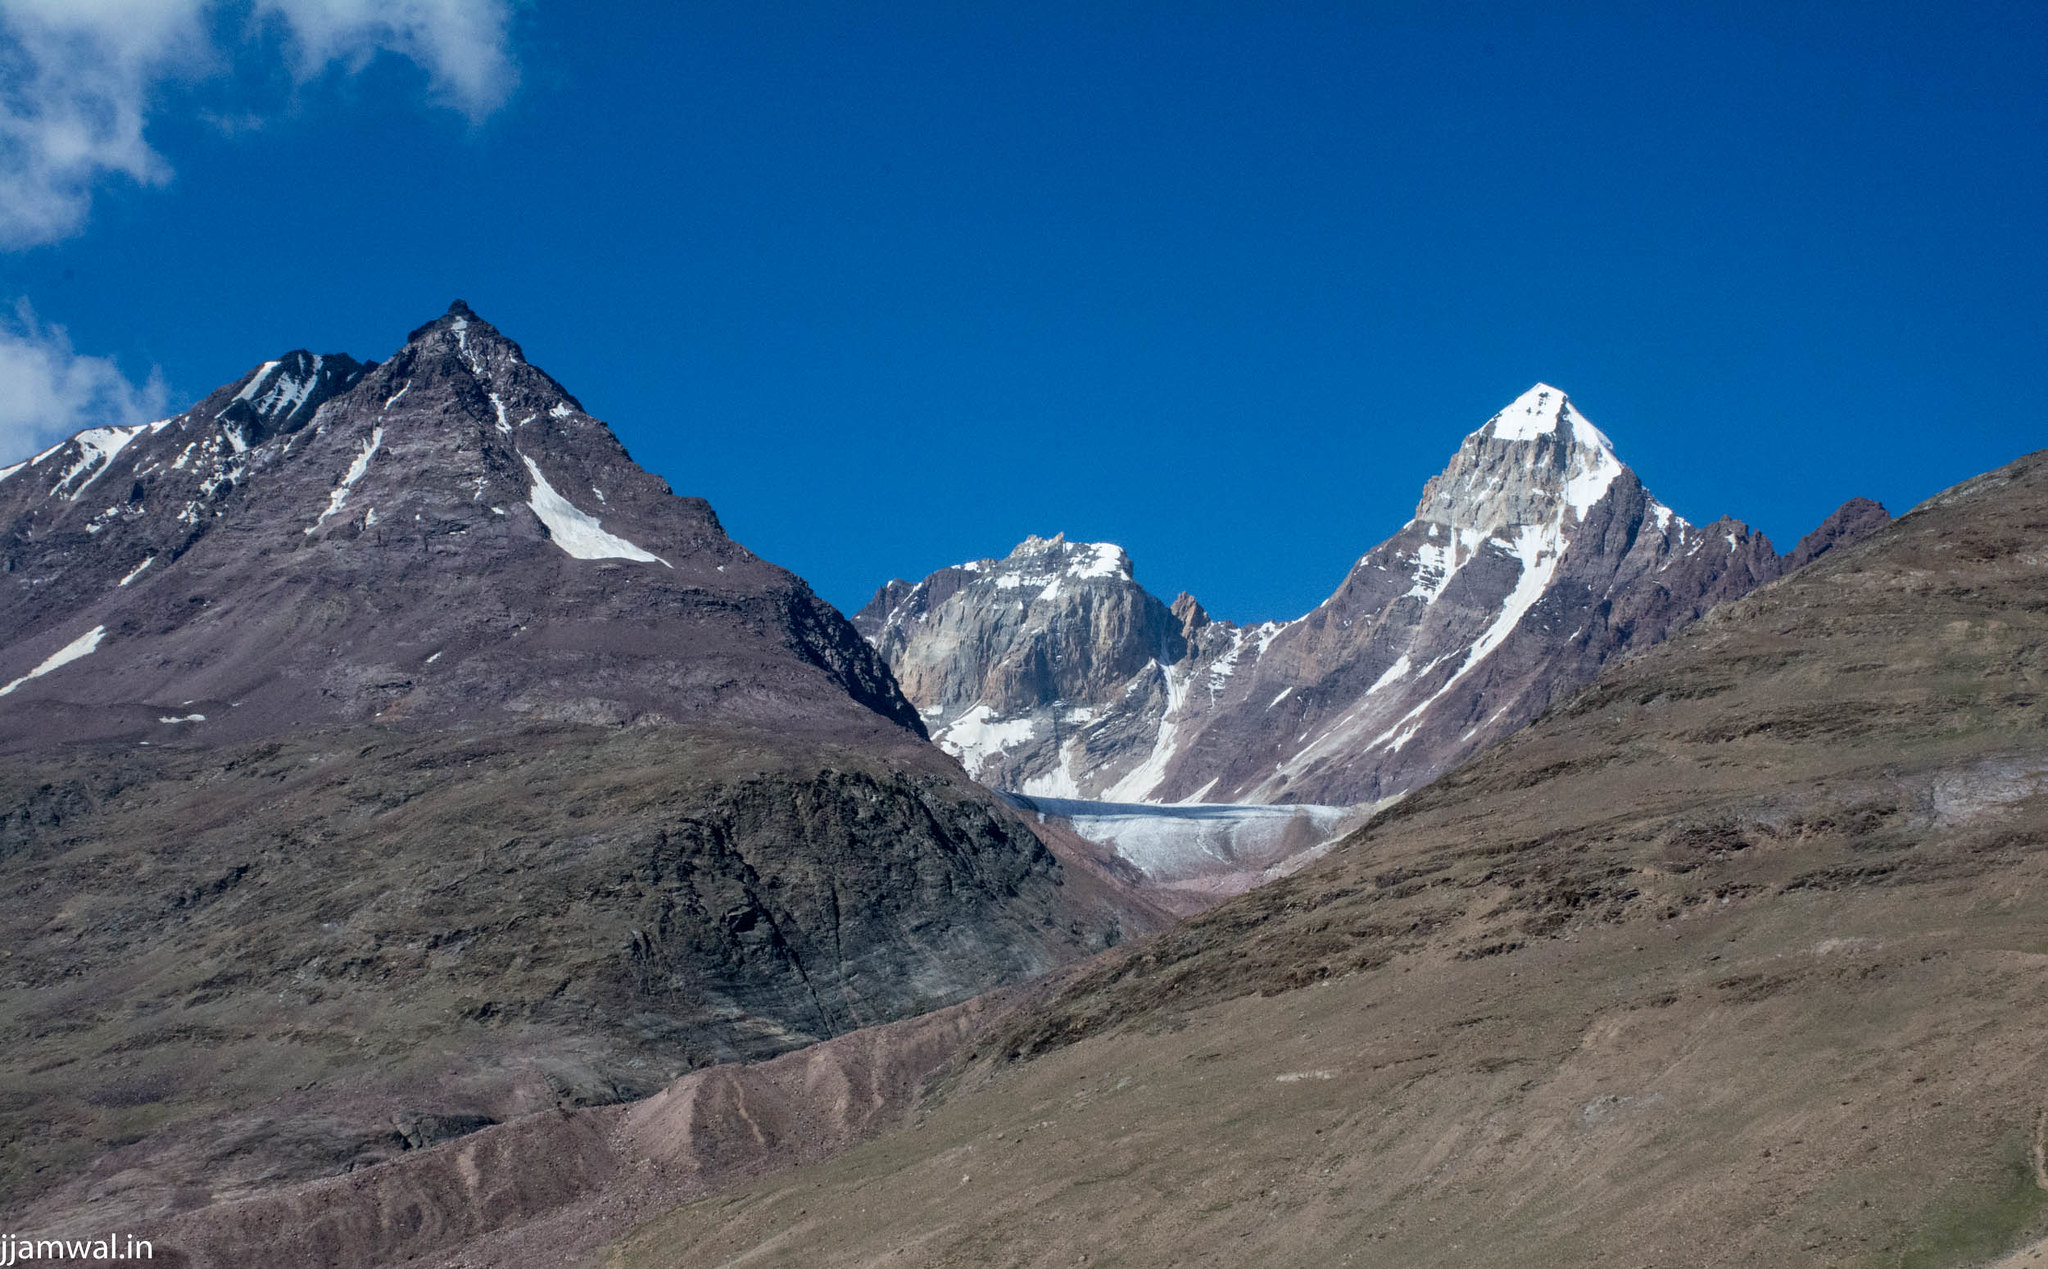 Quite a lot of Unnamed mountain peaks and glaciers